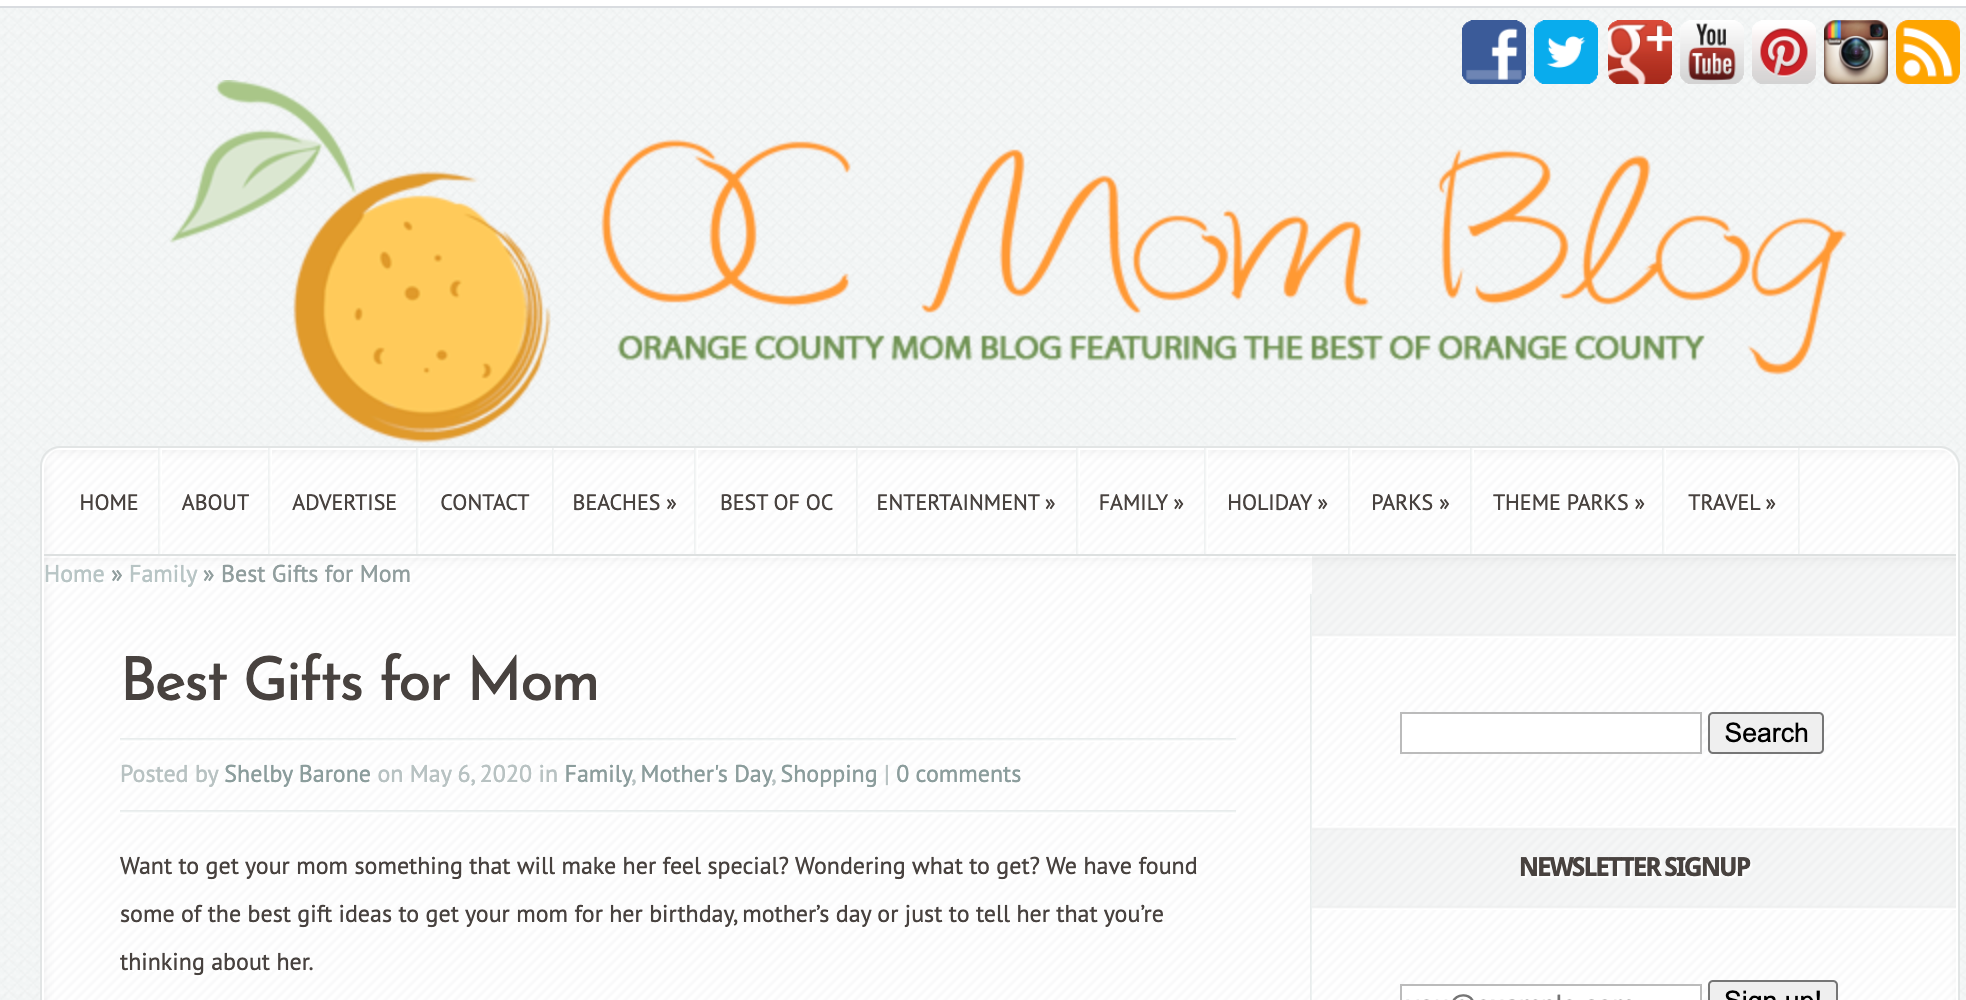 MEMEENO Featured in OC Mom Blog